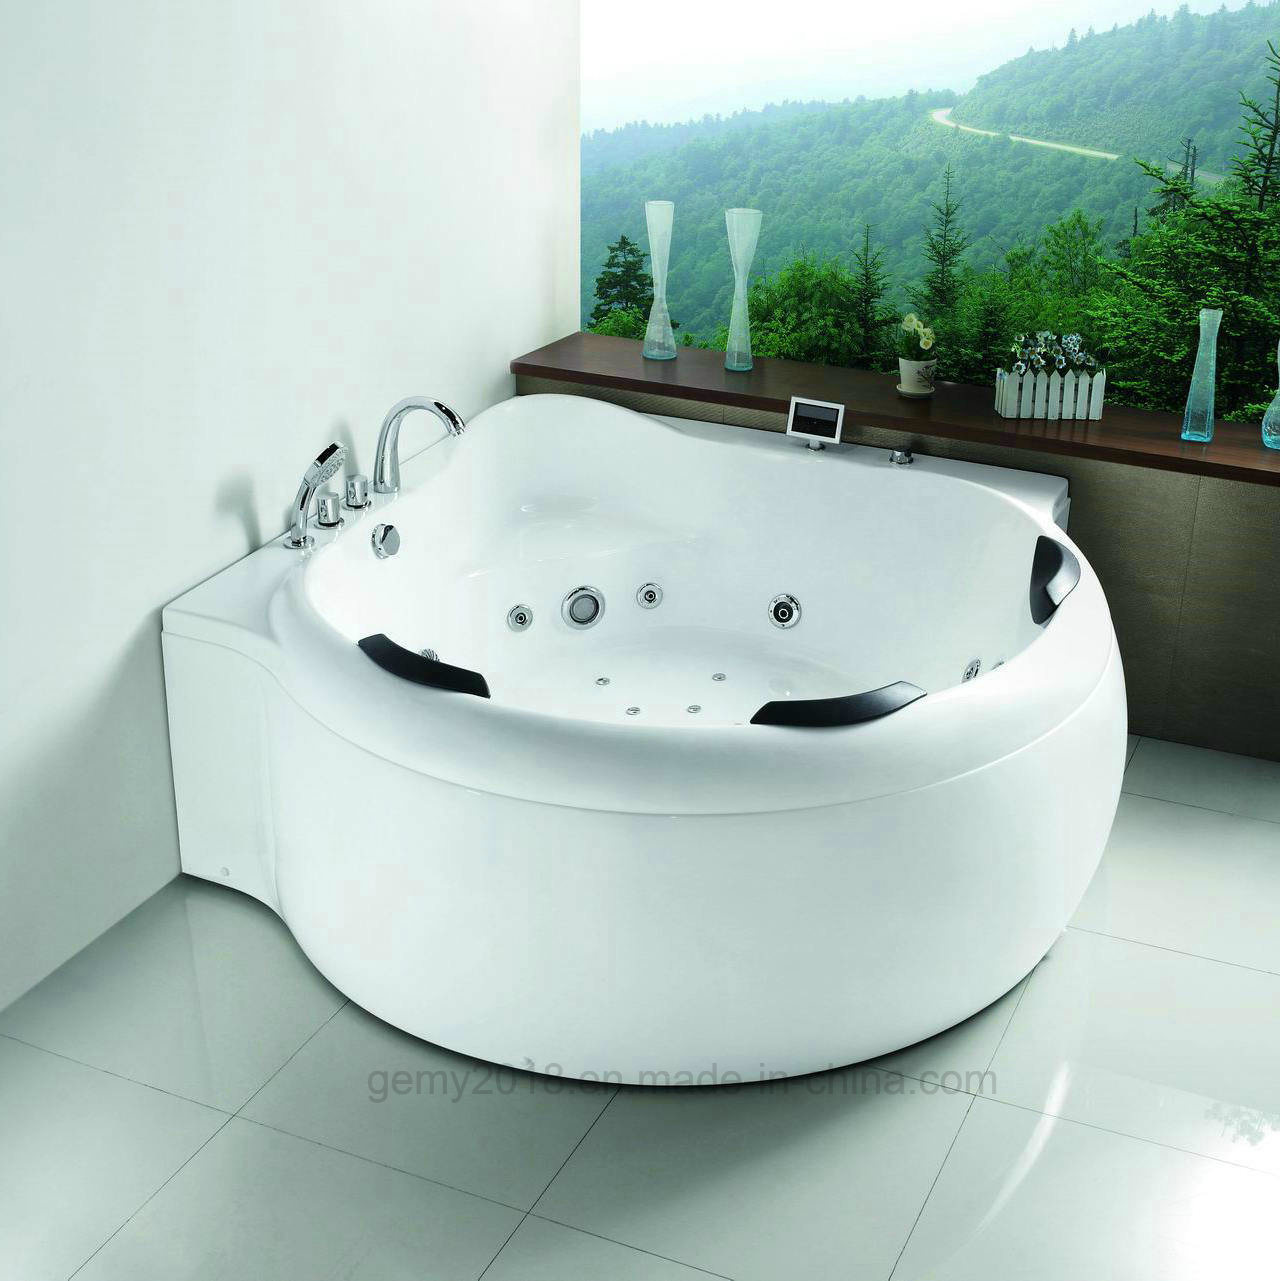 China Conner Round Shape Jacuzzi Bath Tub Sanitary Ware Waterproof ...